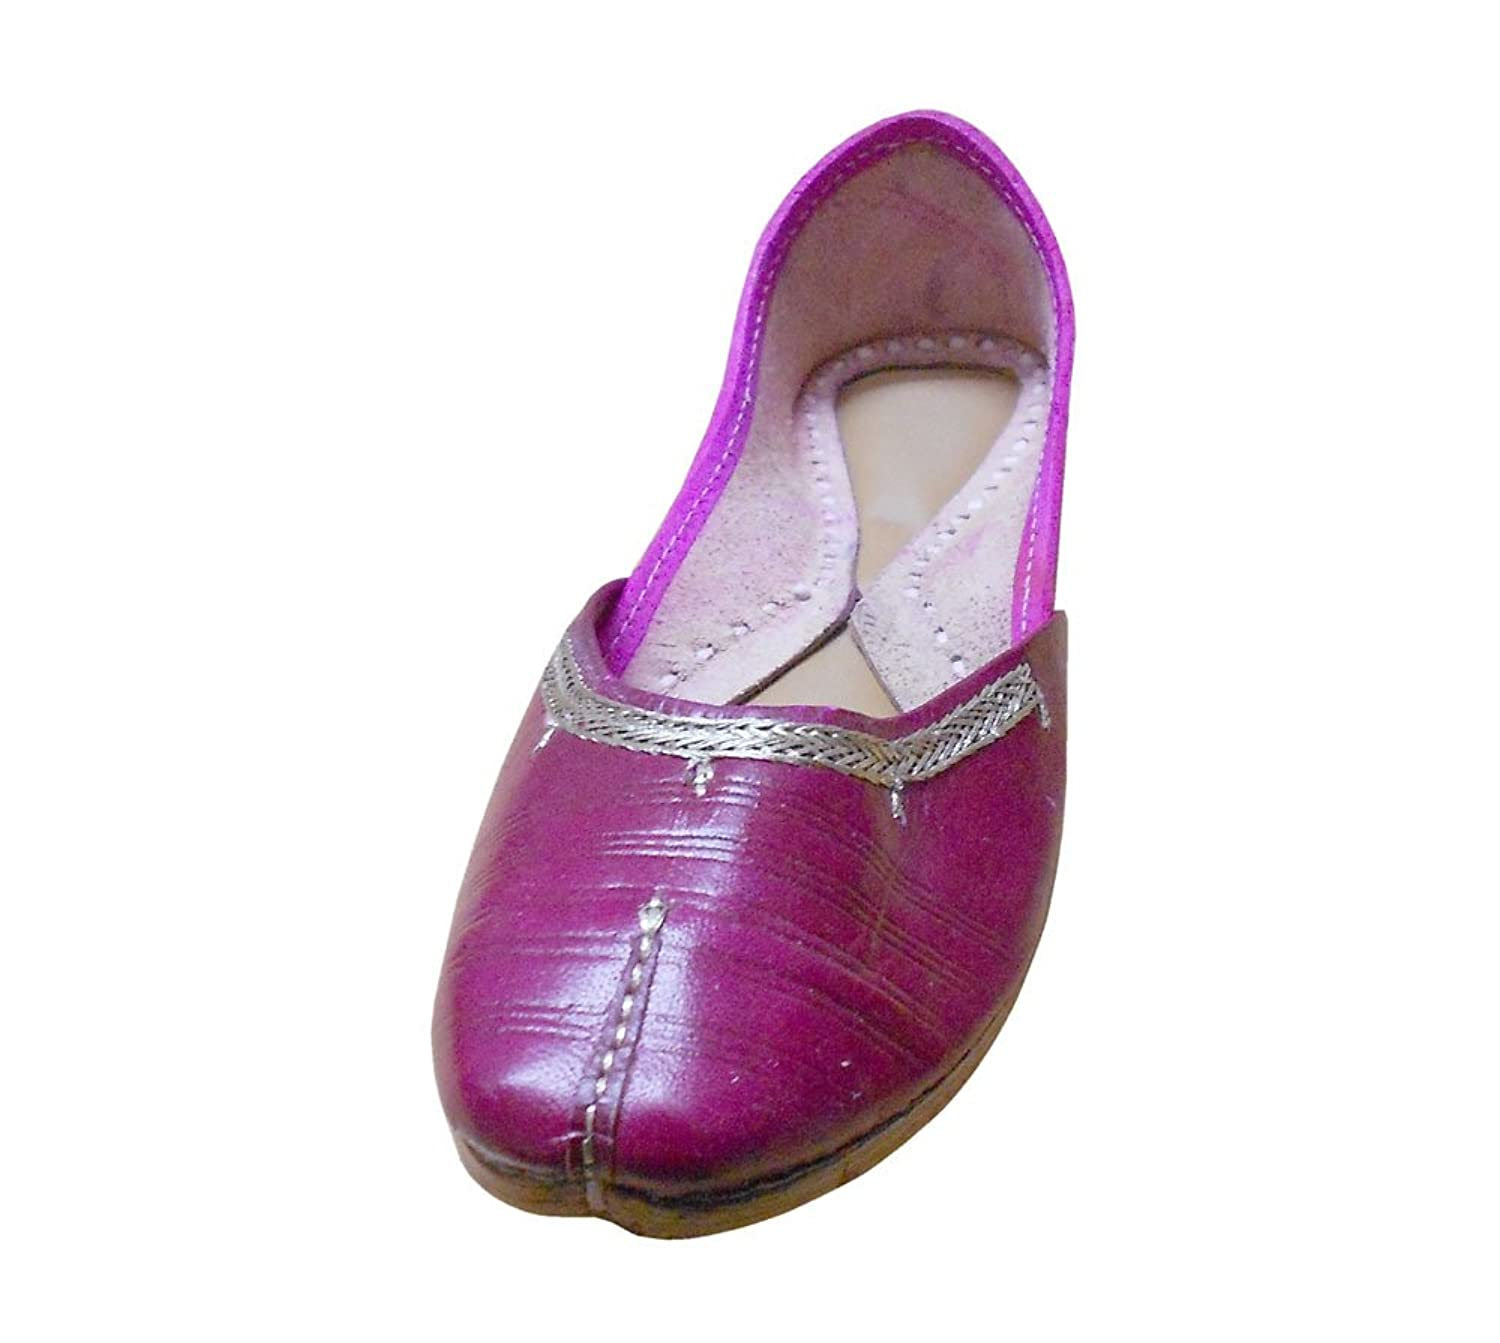 Kalra Creations Women's Traditional Leather Ethnic Shoes